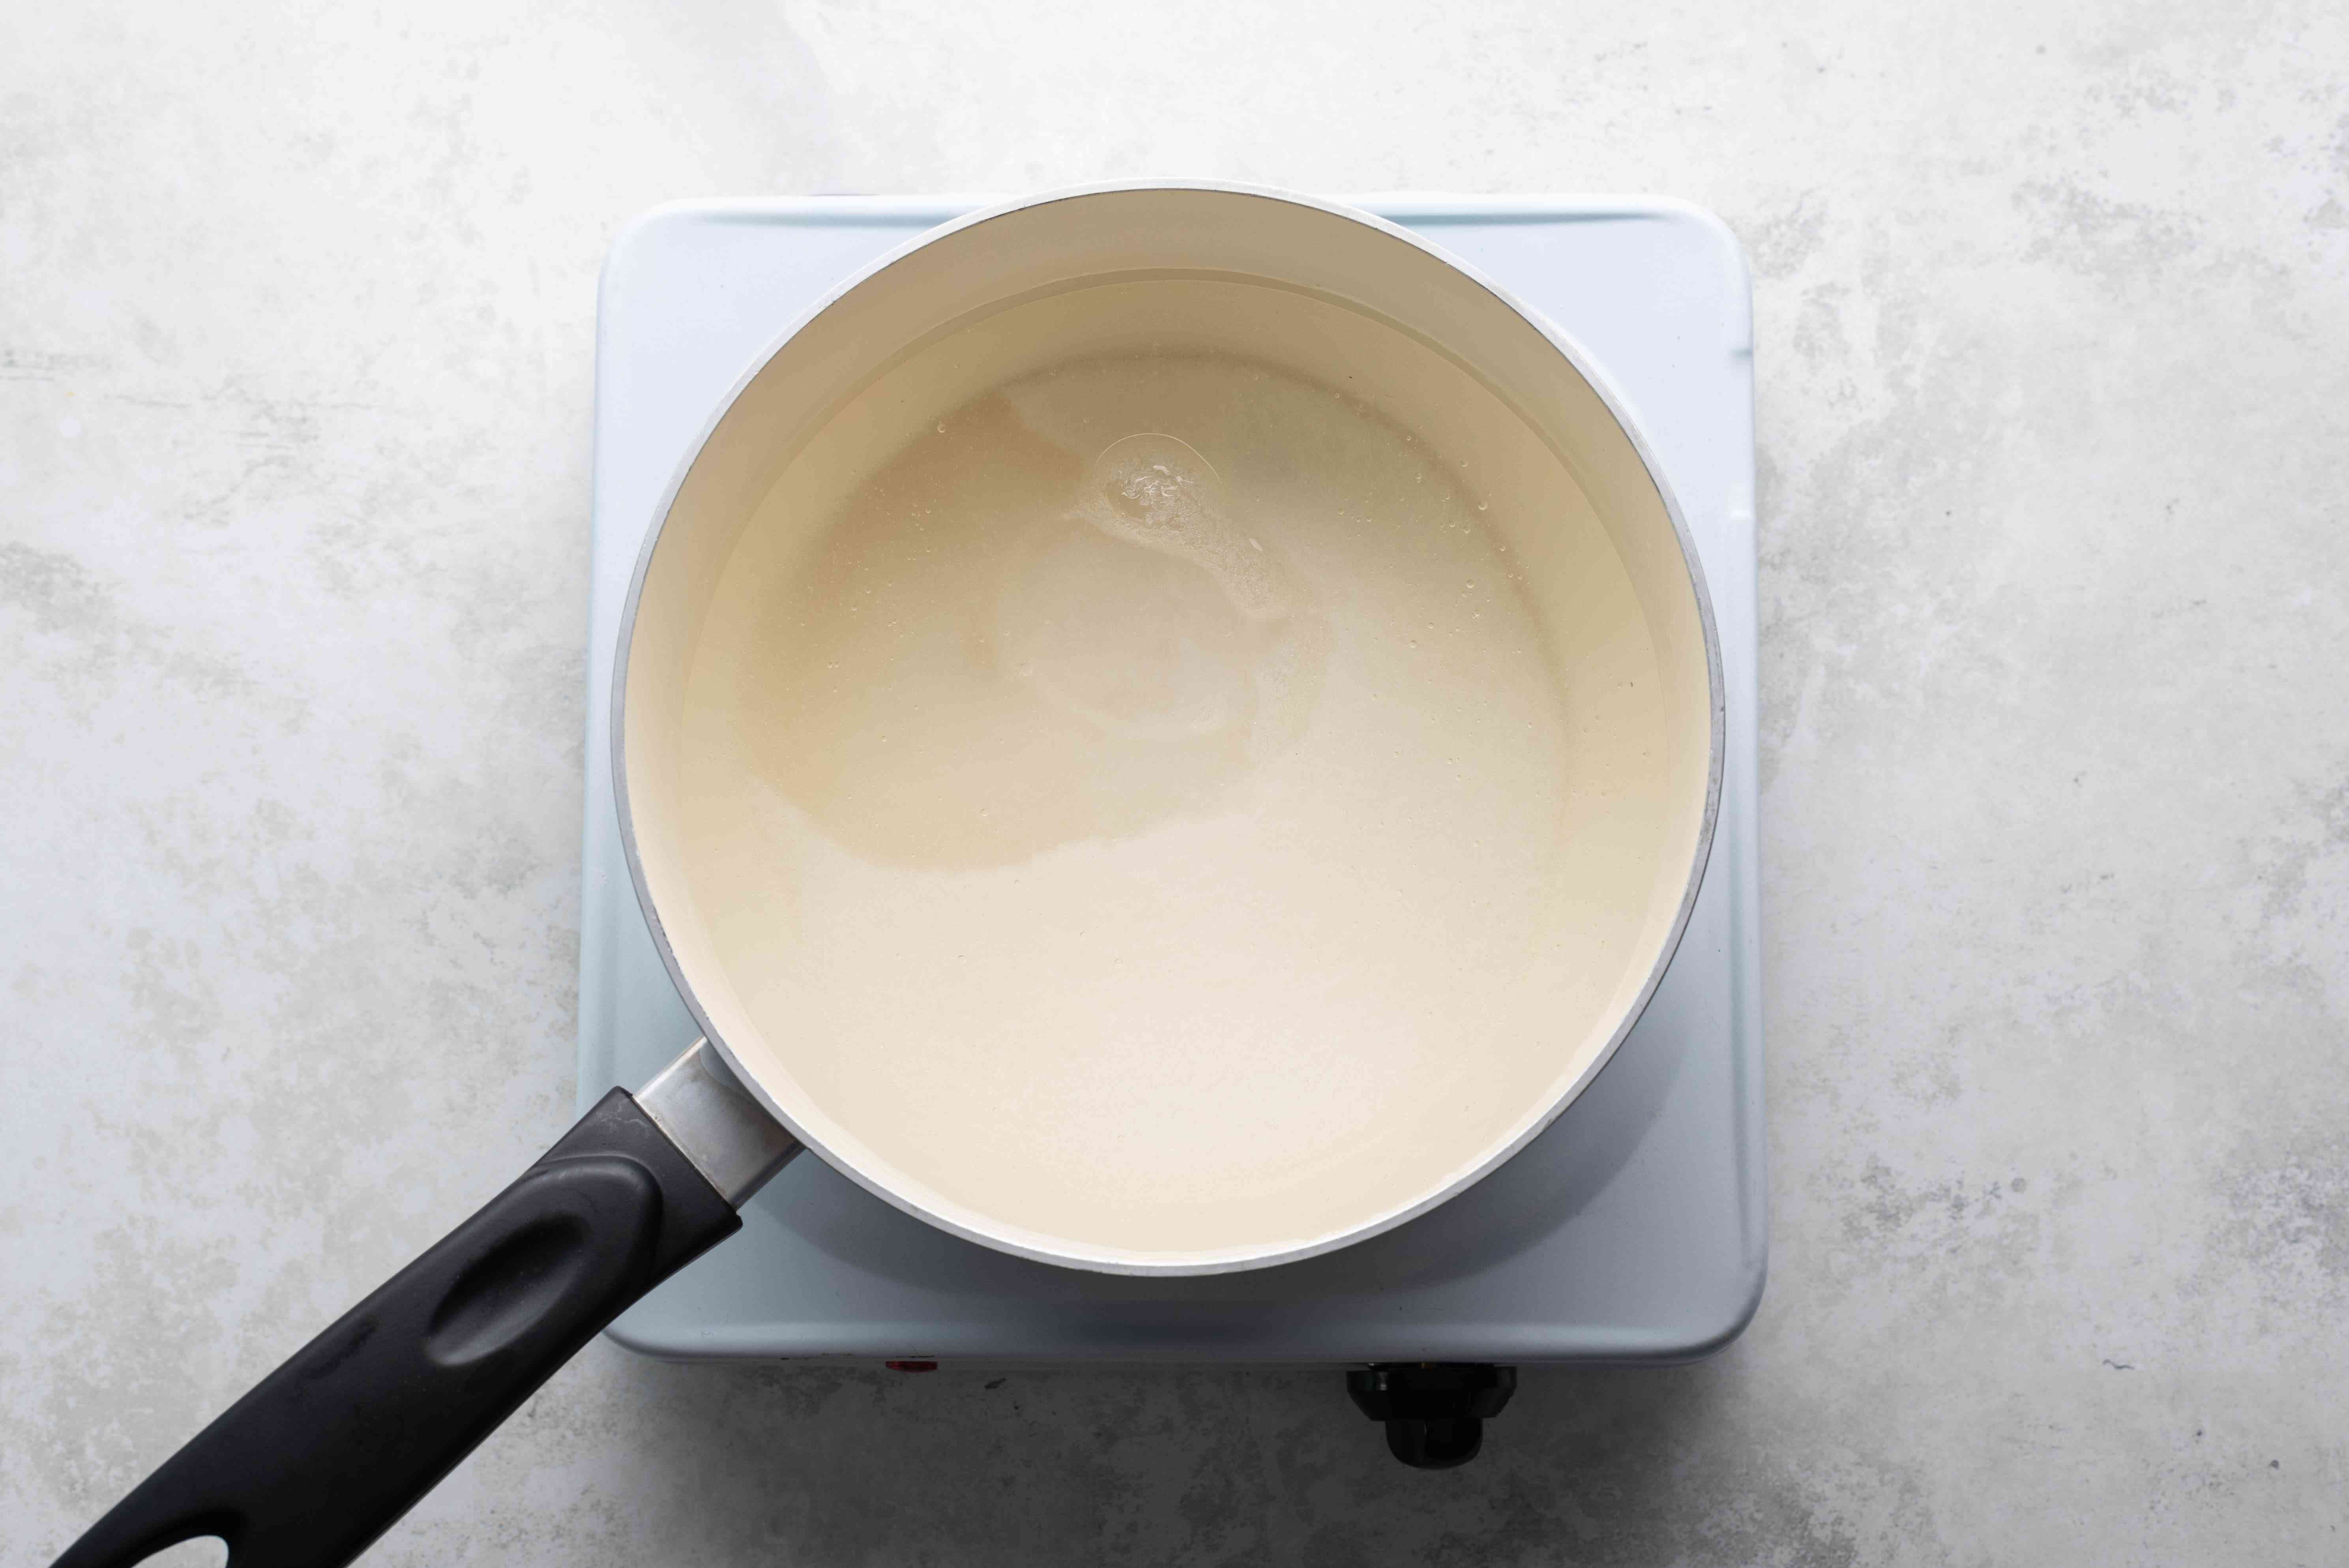 corn syrup, sugar and water in a large saucepan